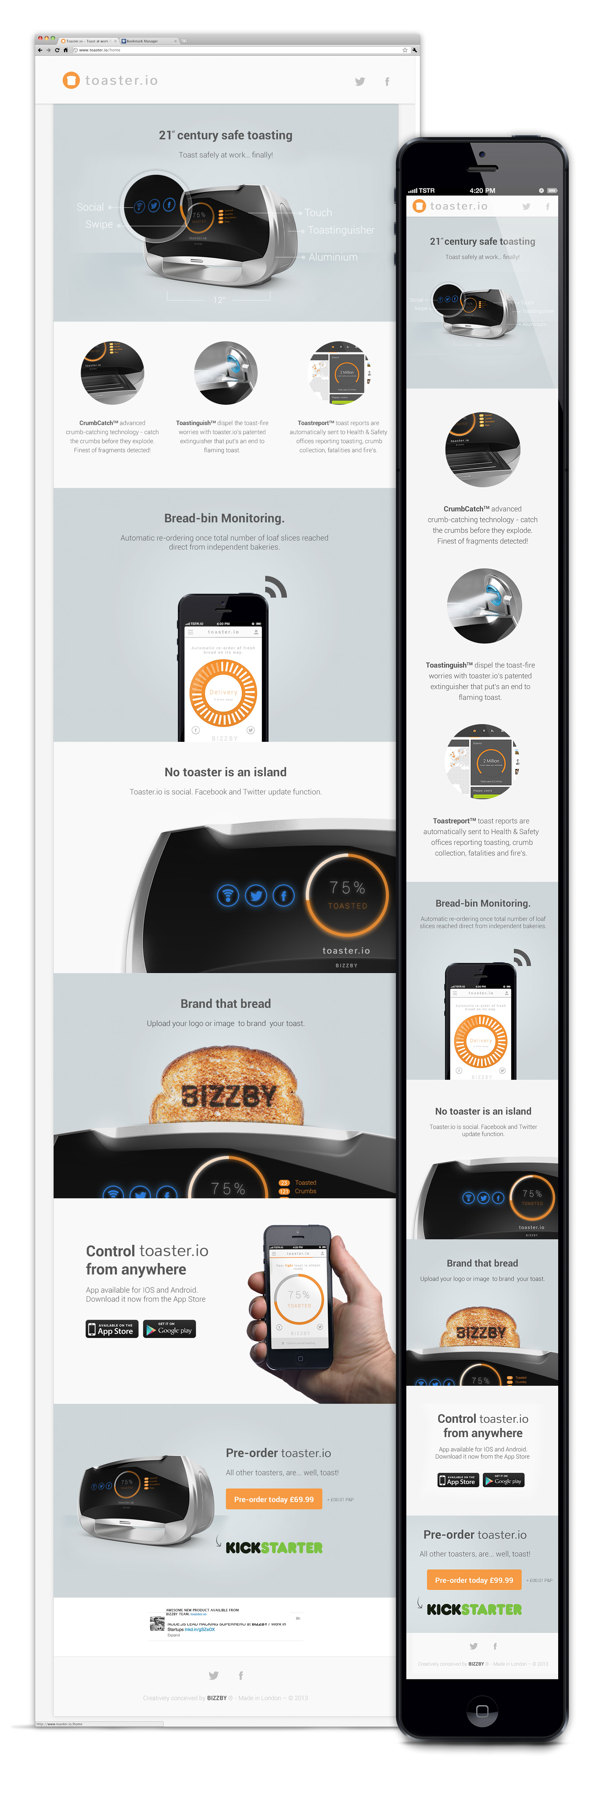 toaster.io by Ashton Snook, via Behance